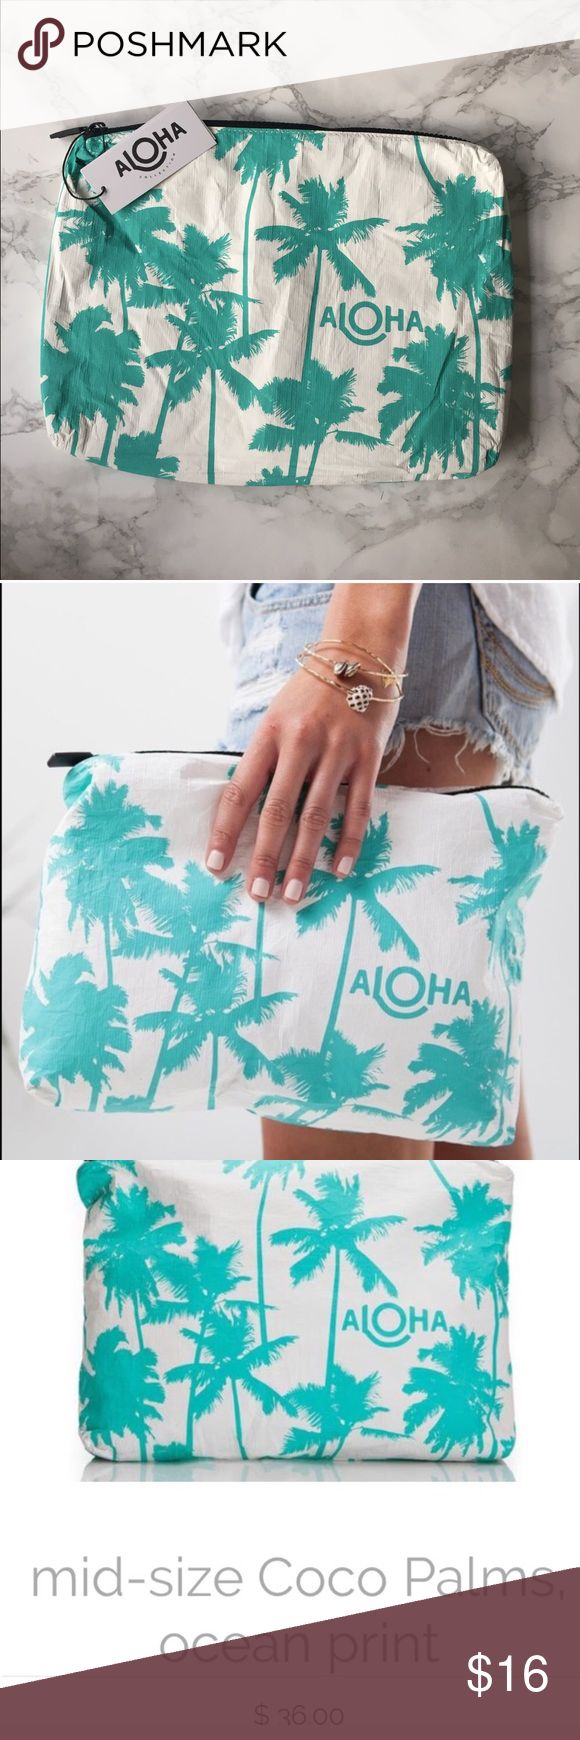 "Aloha splash proof bag / clutch from PopSugar NEW Aloha mid size travel bag / clutch from PopSugar • Take a little Kauai with you on your next adventure! This print was inspired by Kauai's coco palms and the famous Coco Palms Resort.   This pouch is perfect to use as a beach clutch.  Stow your sunscreen, sarong, and bikini, or pack toiletries for your next trip!  Mid-size pouch measures:  11.5"" across x 2"" wide x 8.5"" tall Aloha Island Bags Cosmetic Bags & Cases"